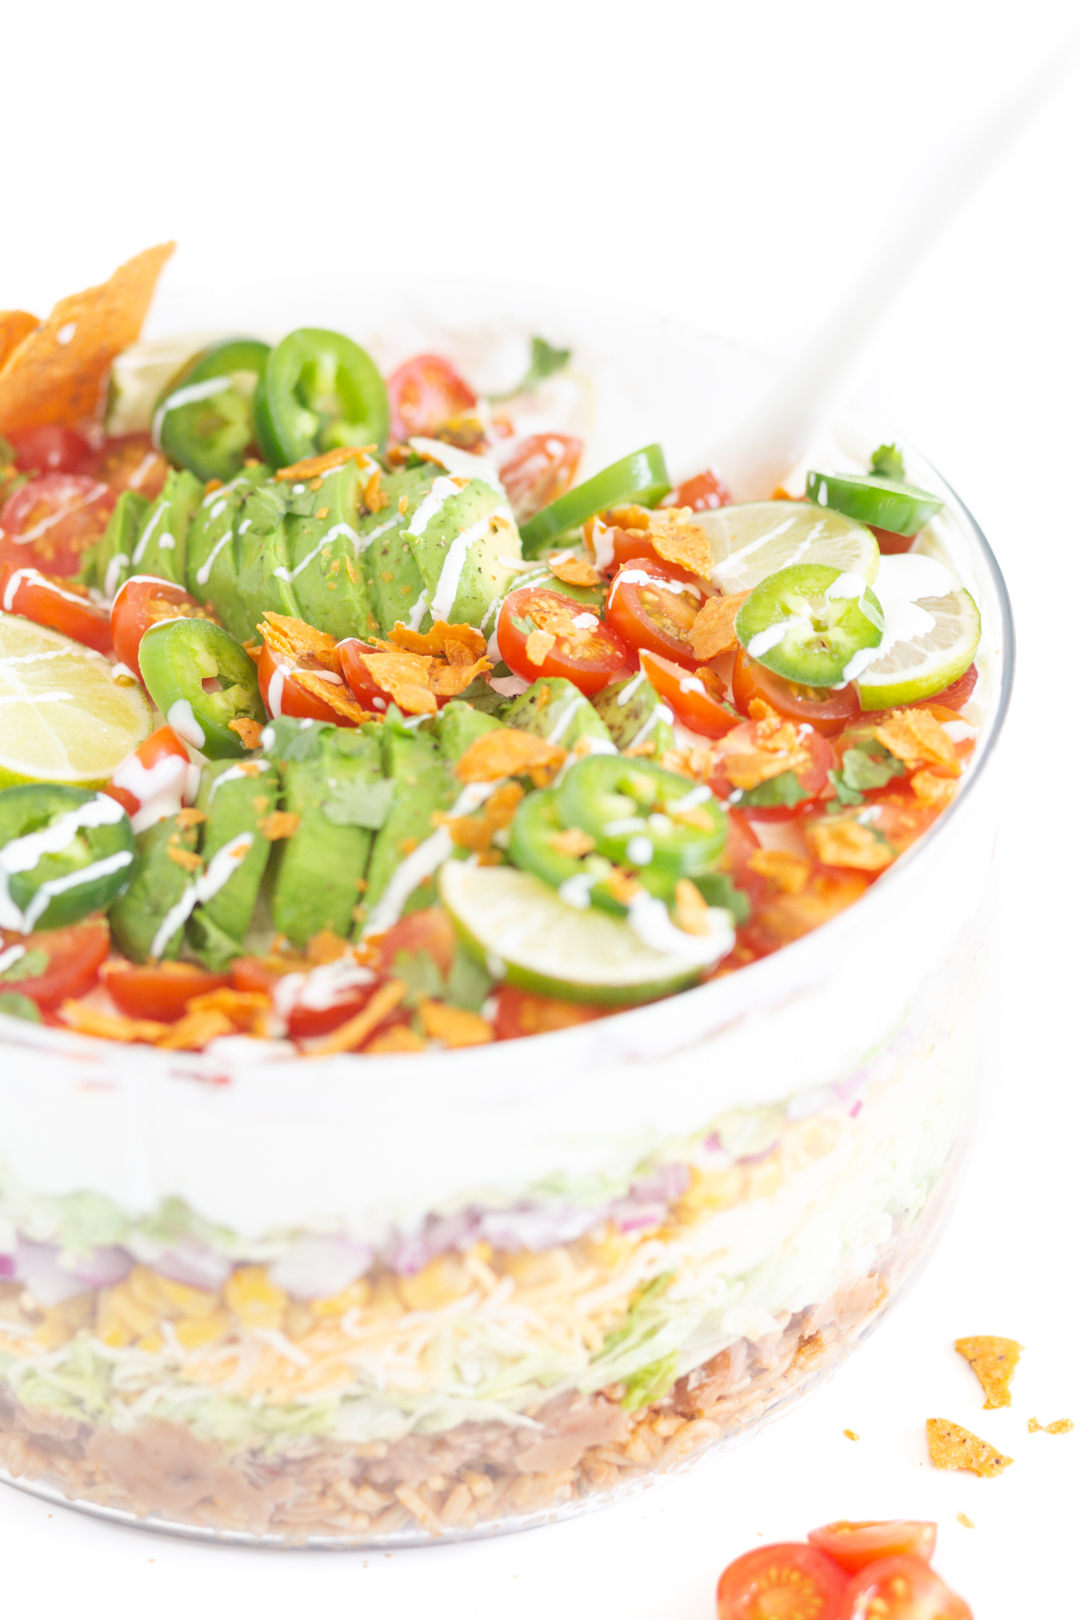 layered Mexican salad topped with fresh avocado, crushed nacho tortillas, cherry tomatoes, jalapeños, lime slices